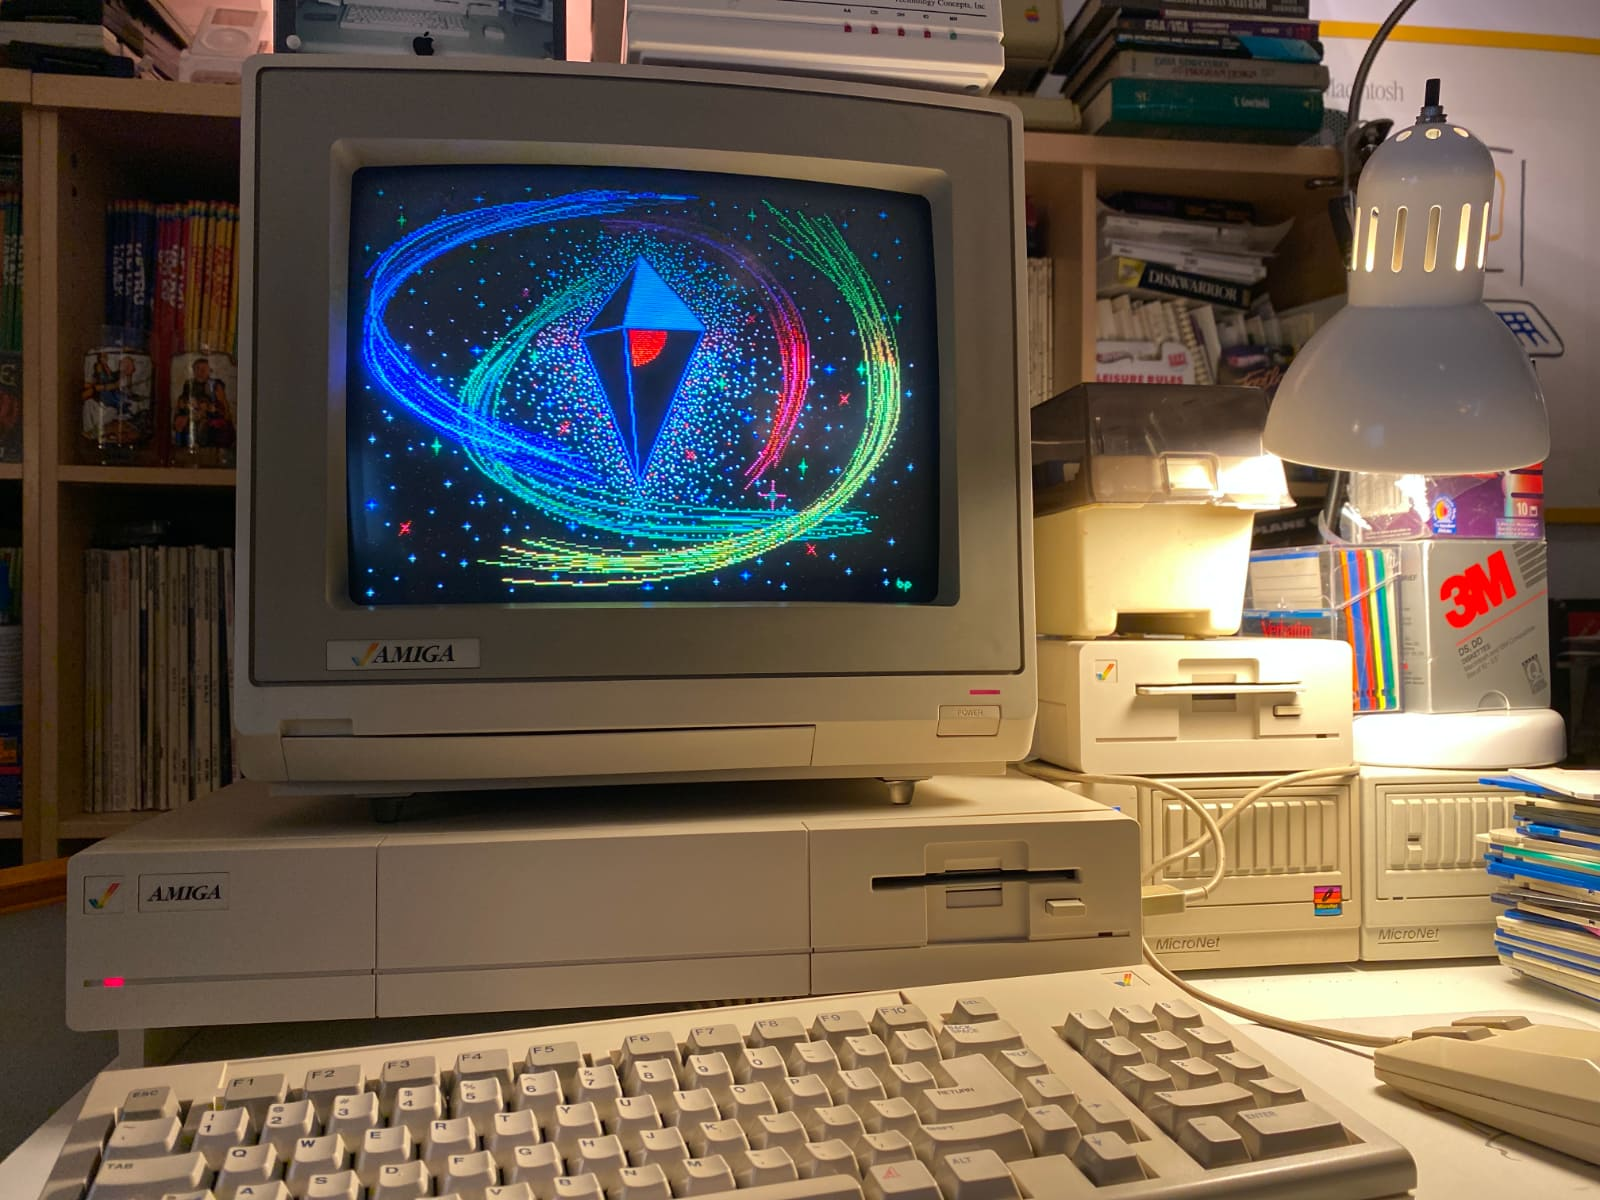 Amiga 1000 displaying No Man's Sky pixel art